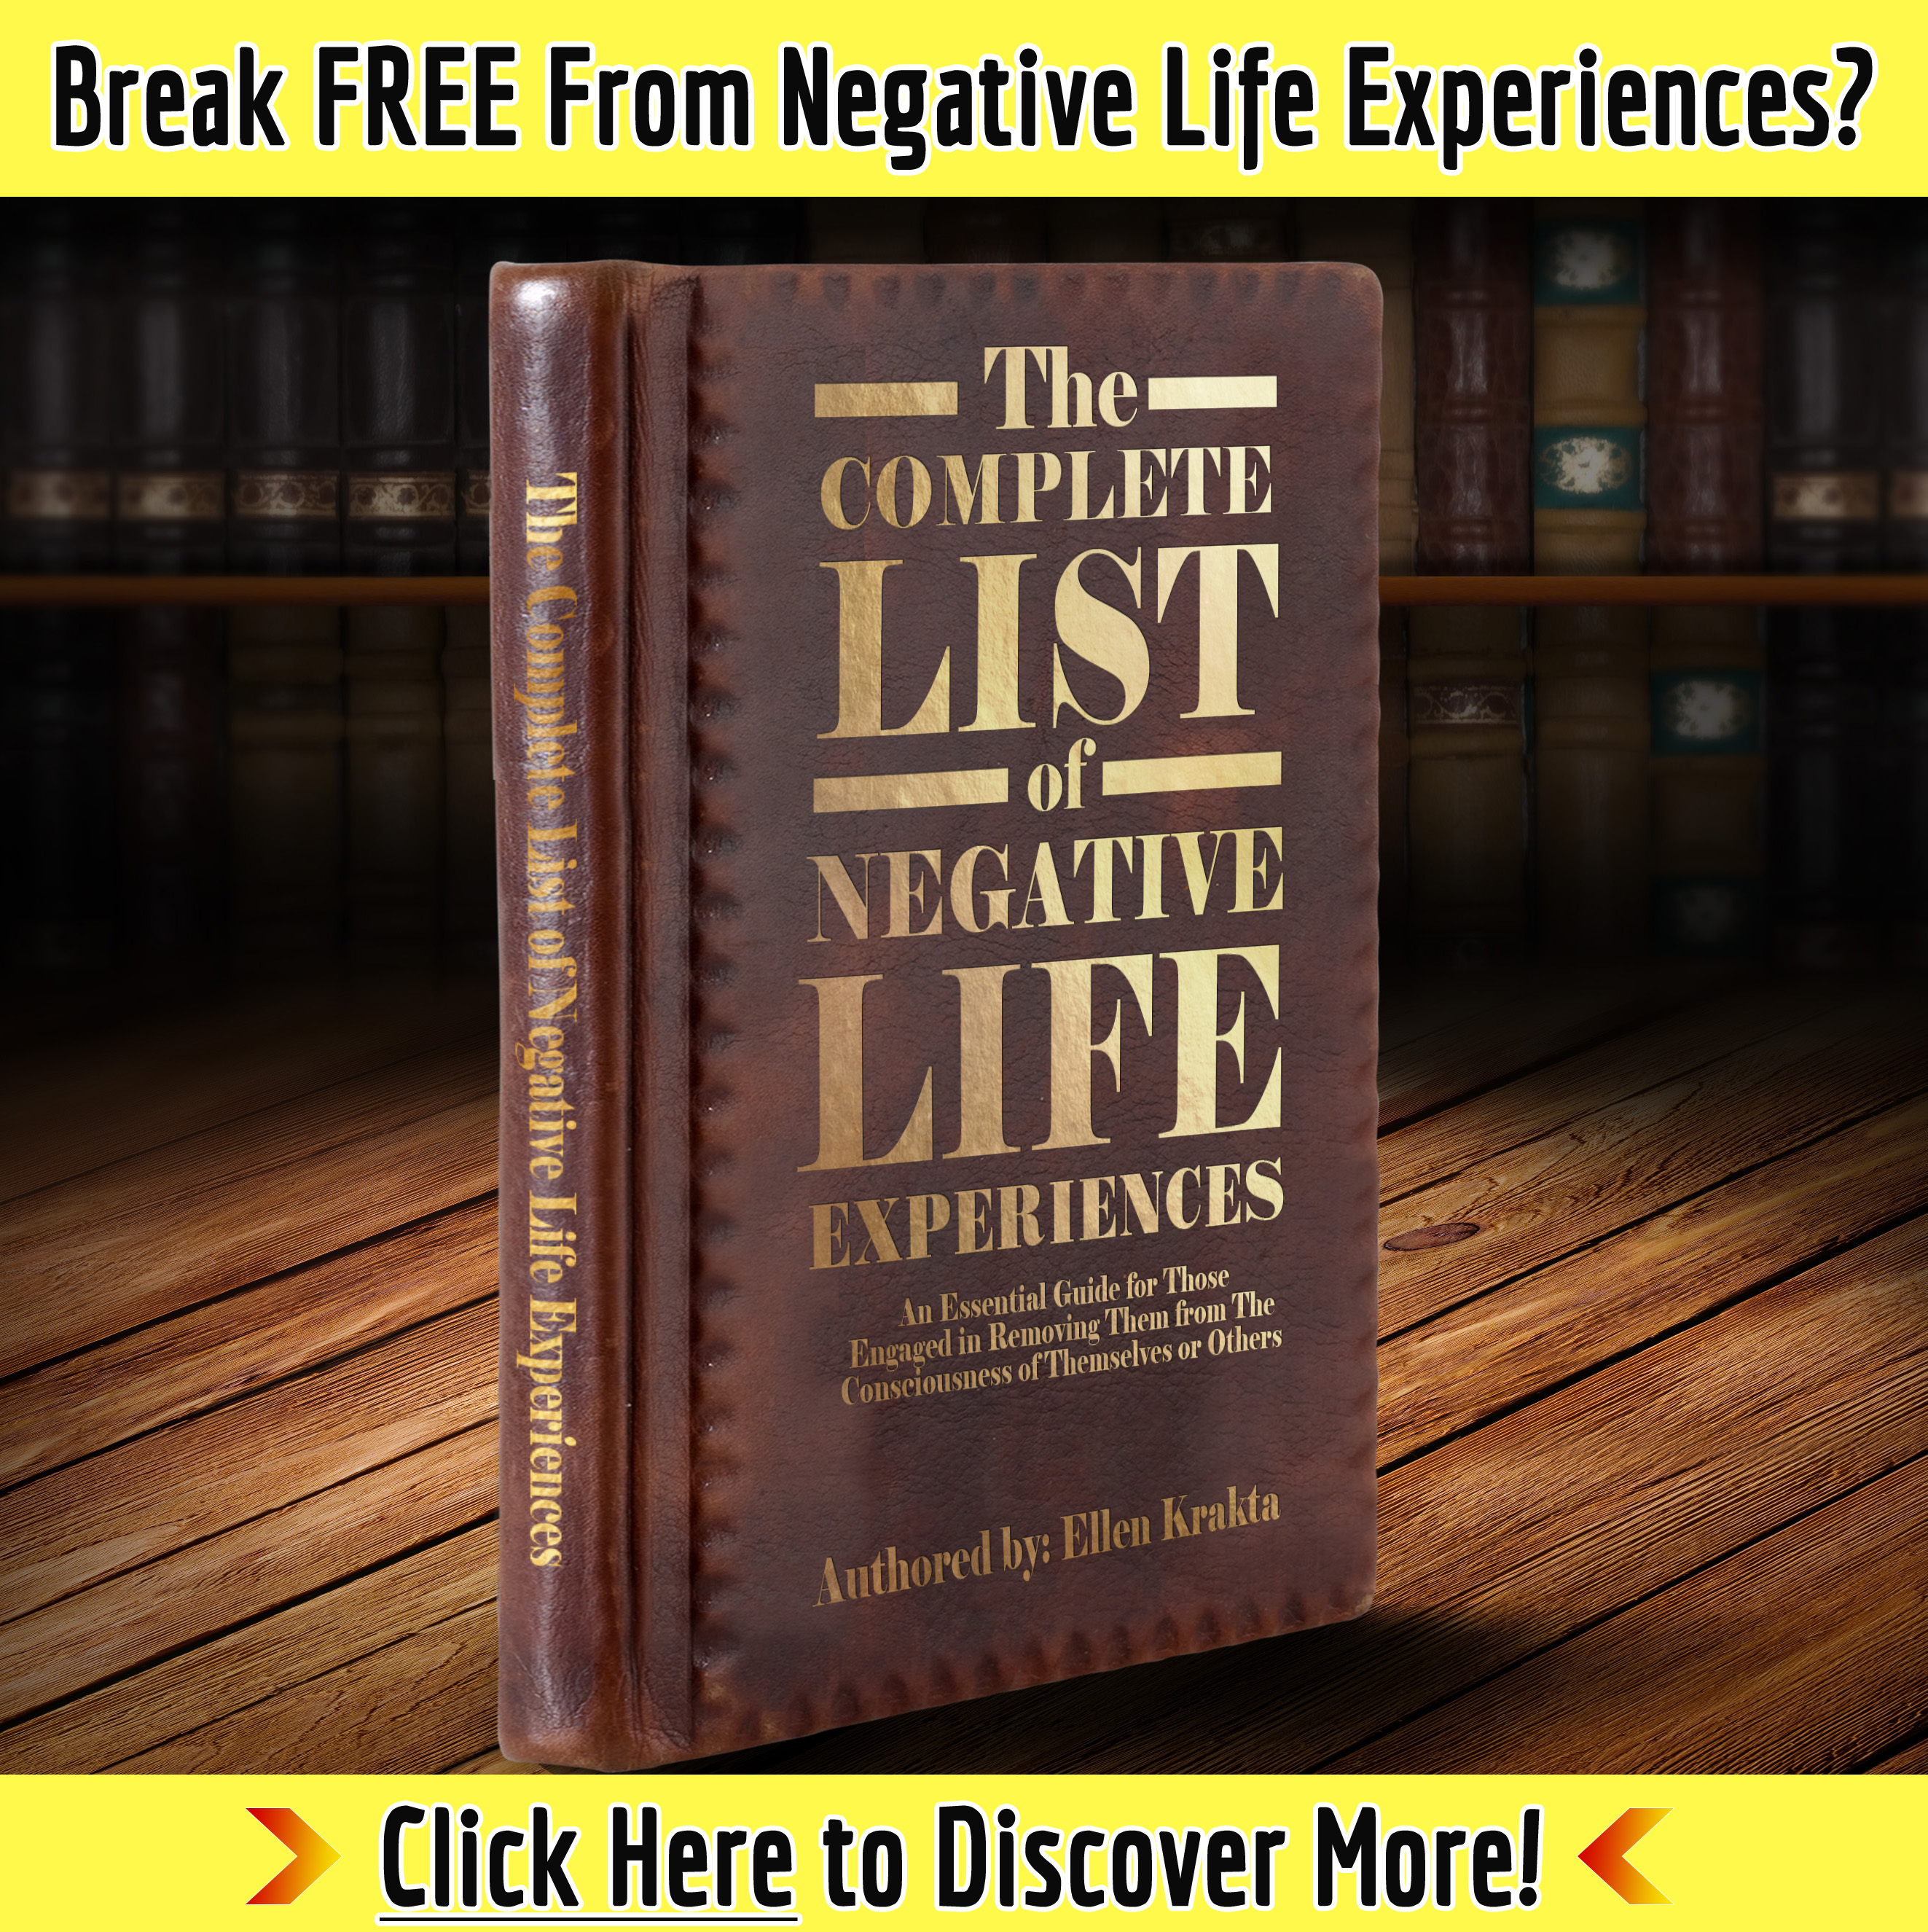 Click Here to See How to Deal with Negative Life Experiences!